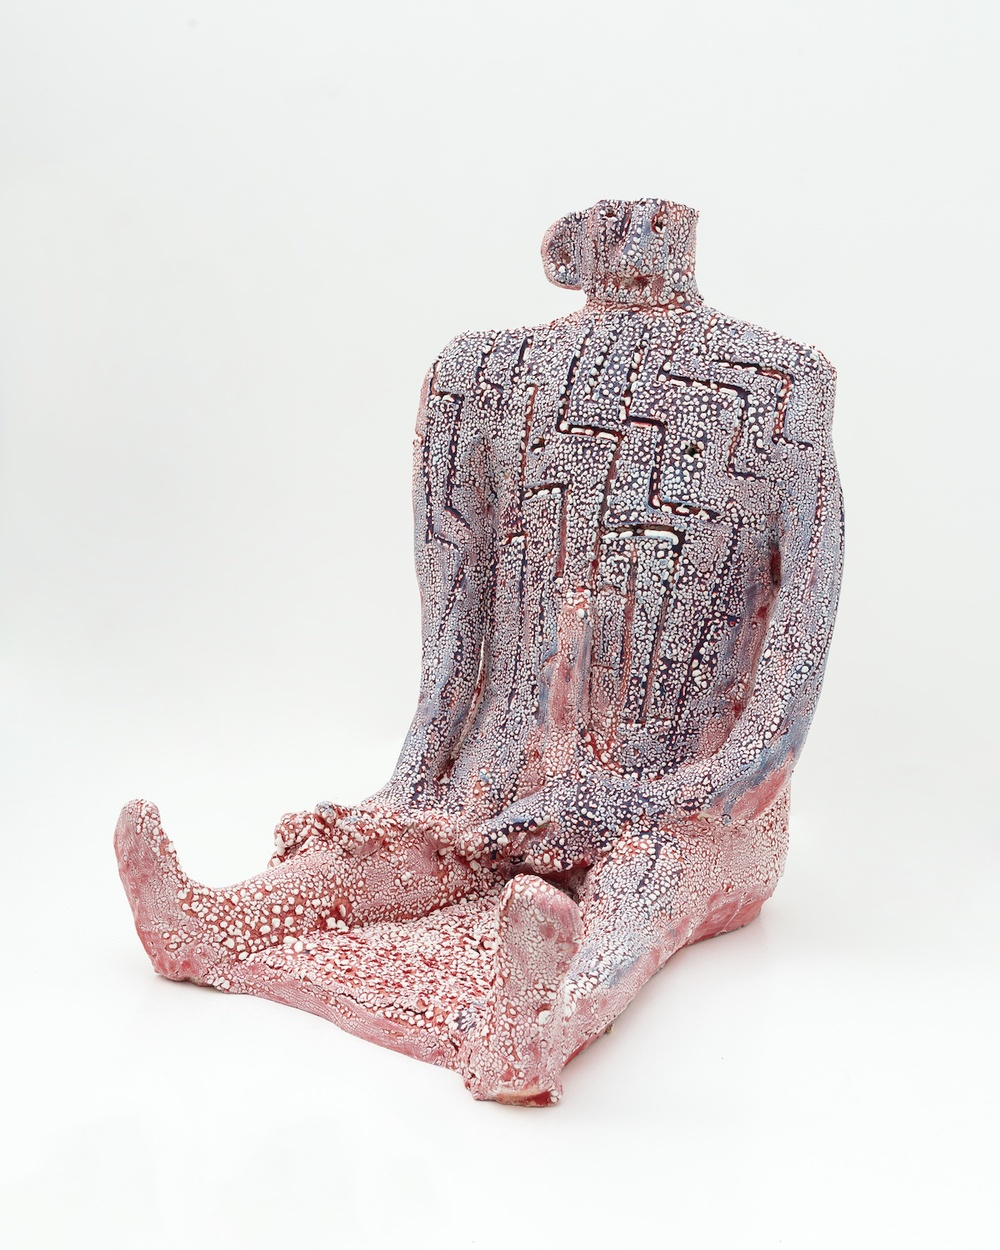 "William J. O'Brien Untitled 2015 Glazed ceramic 23"" x 16"" x 22"" WOB998"